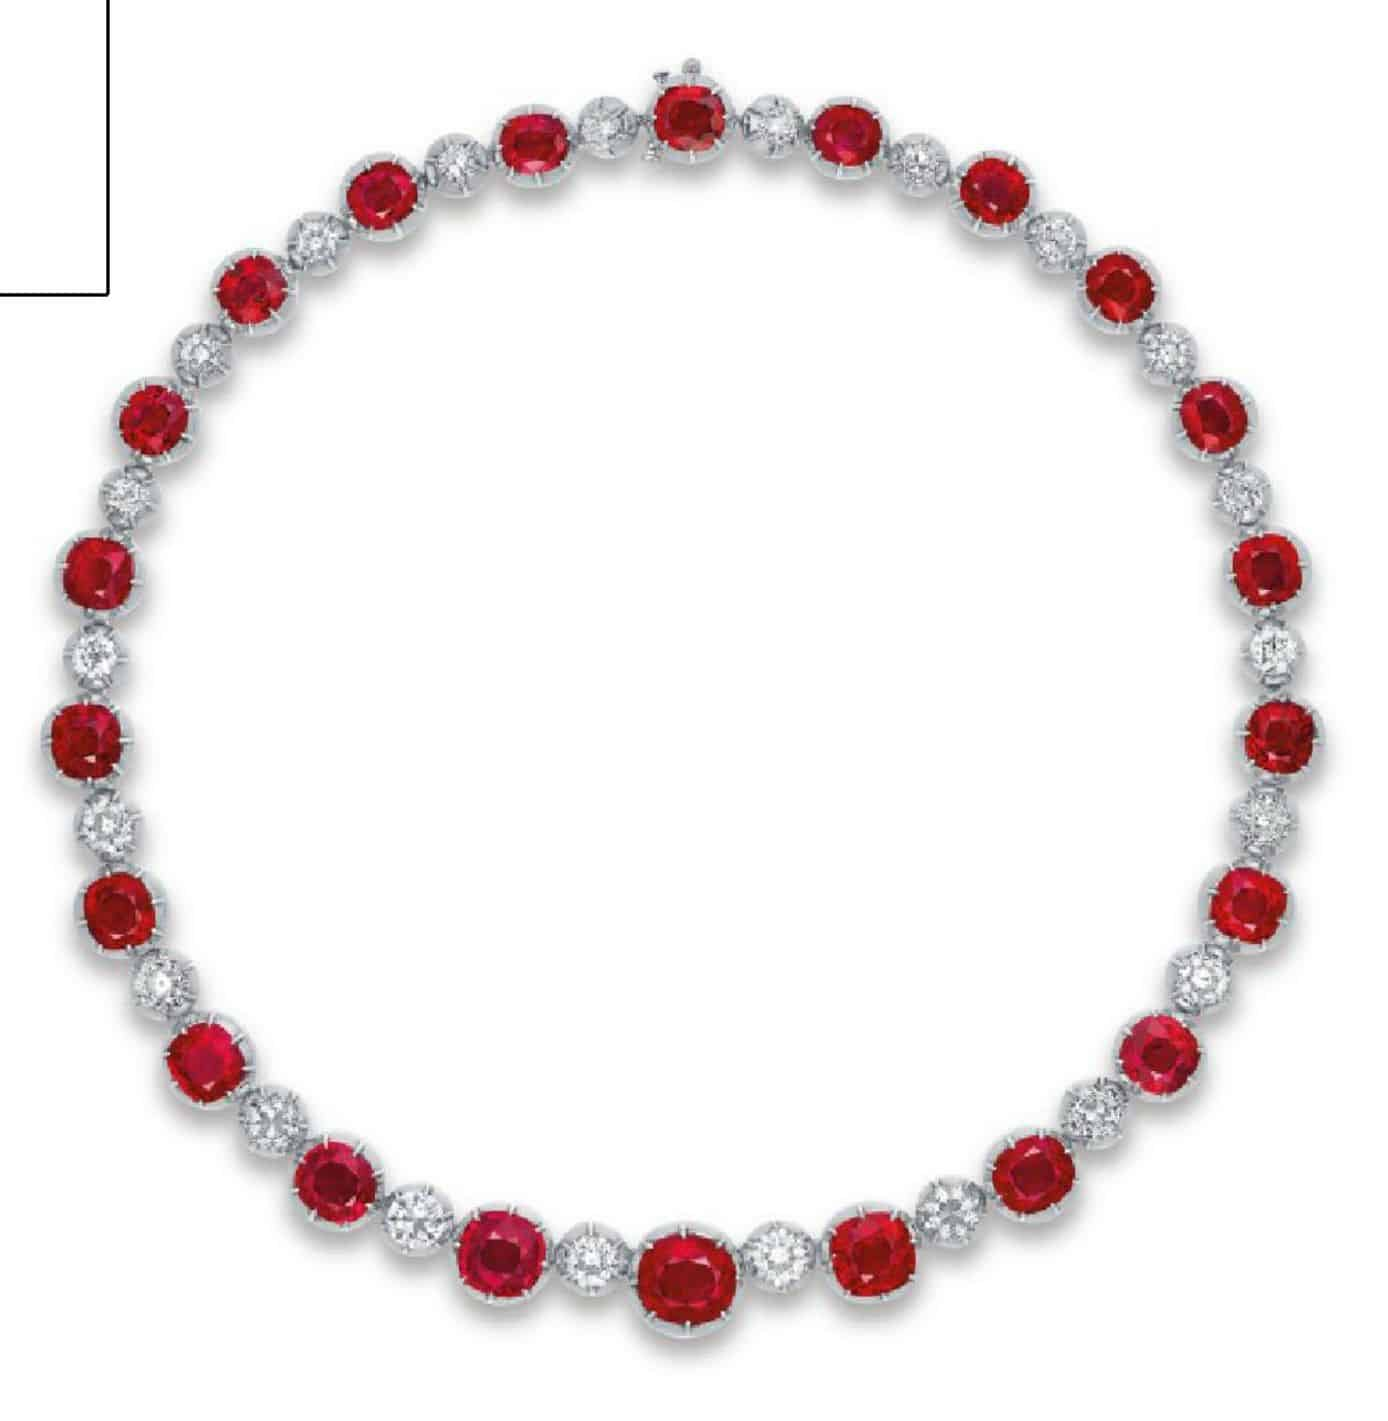 LOT 2086 - AN EXCLUSIVE RUBY AND DIAMOND NECKLACE